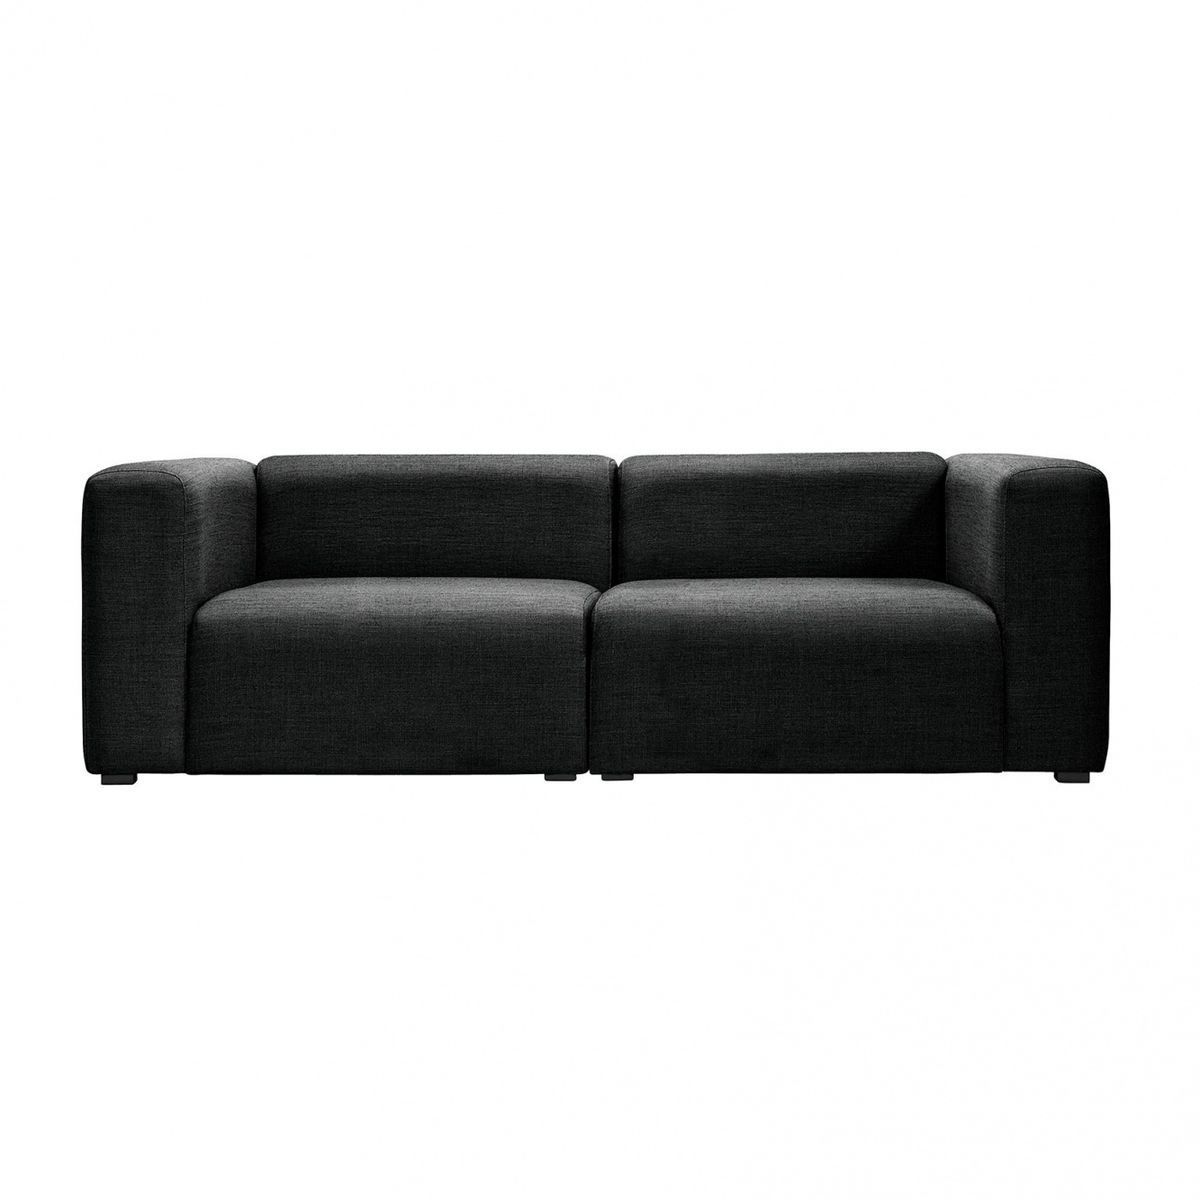 mags 2 5 sitzer sofa stoff surface hay. Black Bedroom Furniture Sets. Home Design Ideas